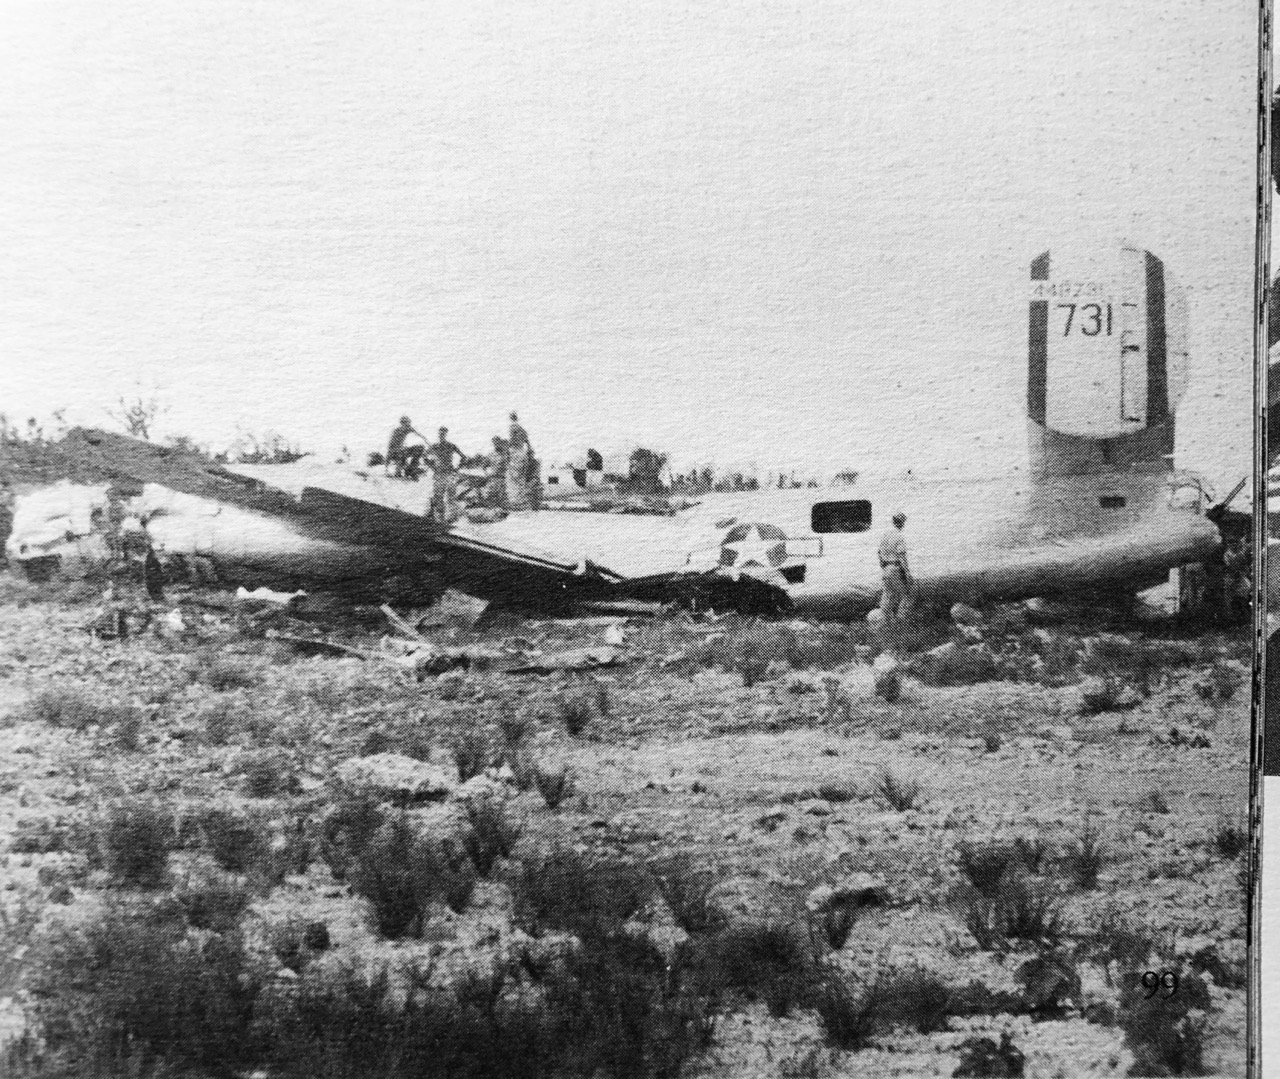 "The wreckage on Angaur, Palau, of Joe Dubinsky's crew's B-24 "" 'Til Then "". Although other crashes at and near this airfield resulted in fatalities, this was noted by a unit historian as perhaps the most dramatic crash. Rolf Slen chuckles over Turek's account of the joy-riding marines bailing out onto the runway before the skid was complete."